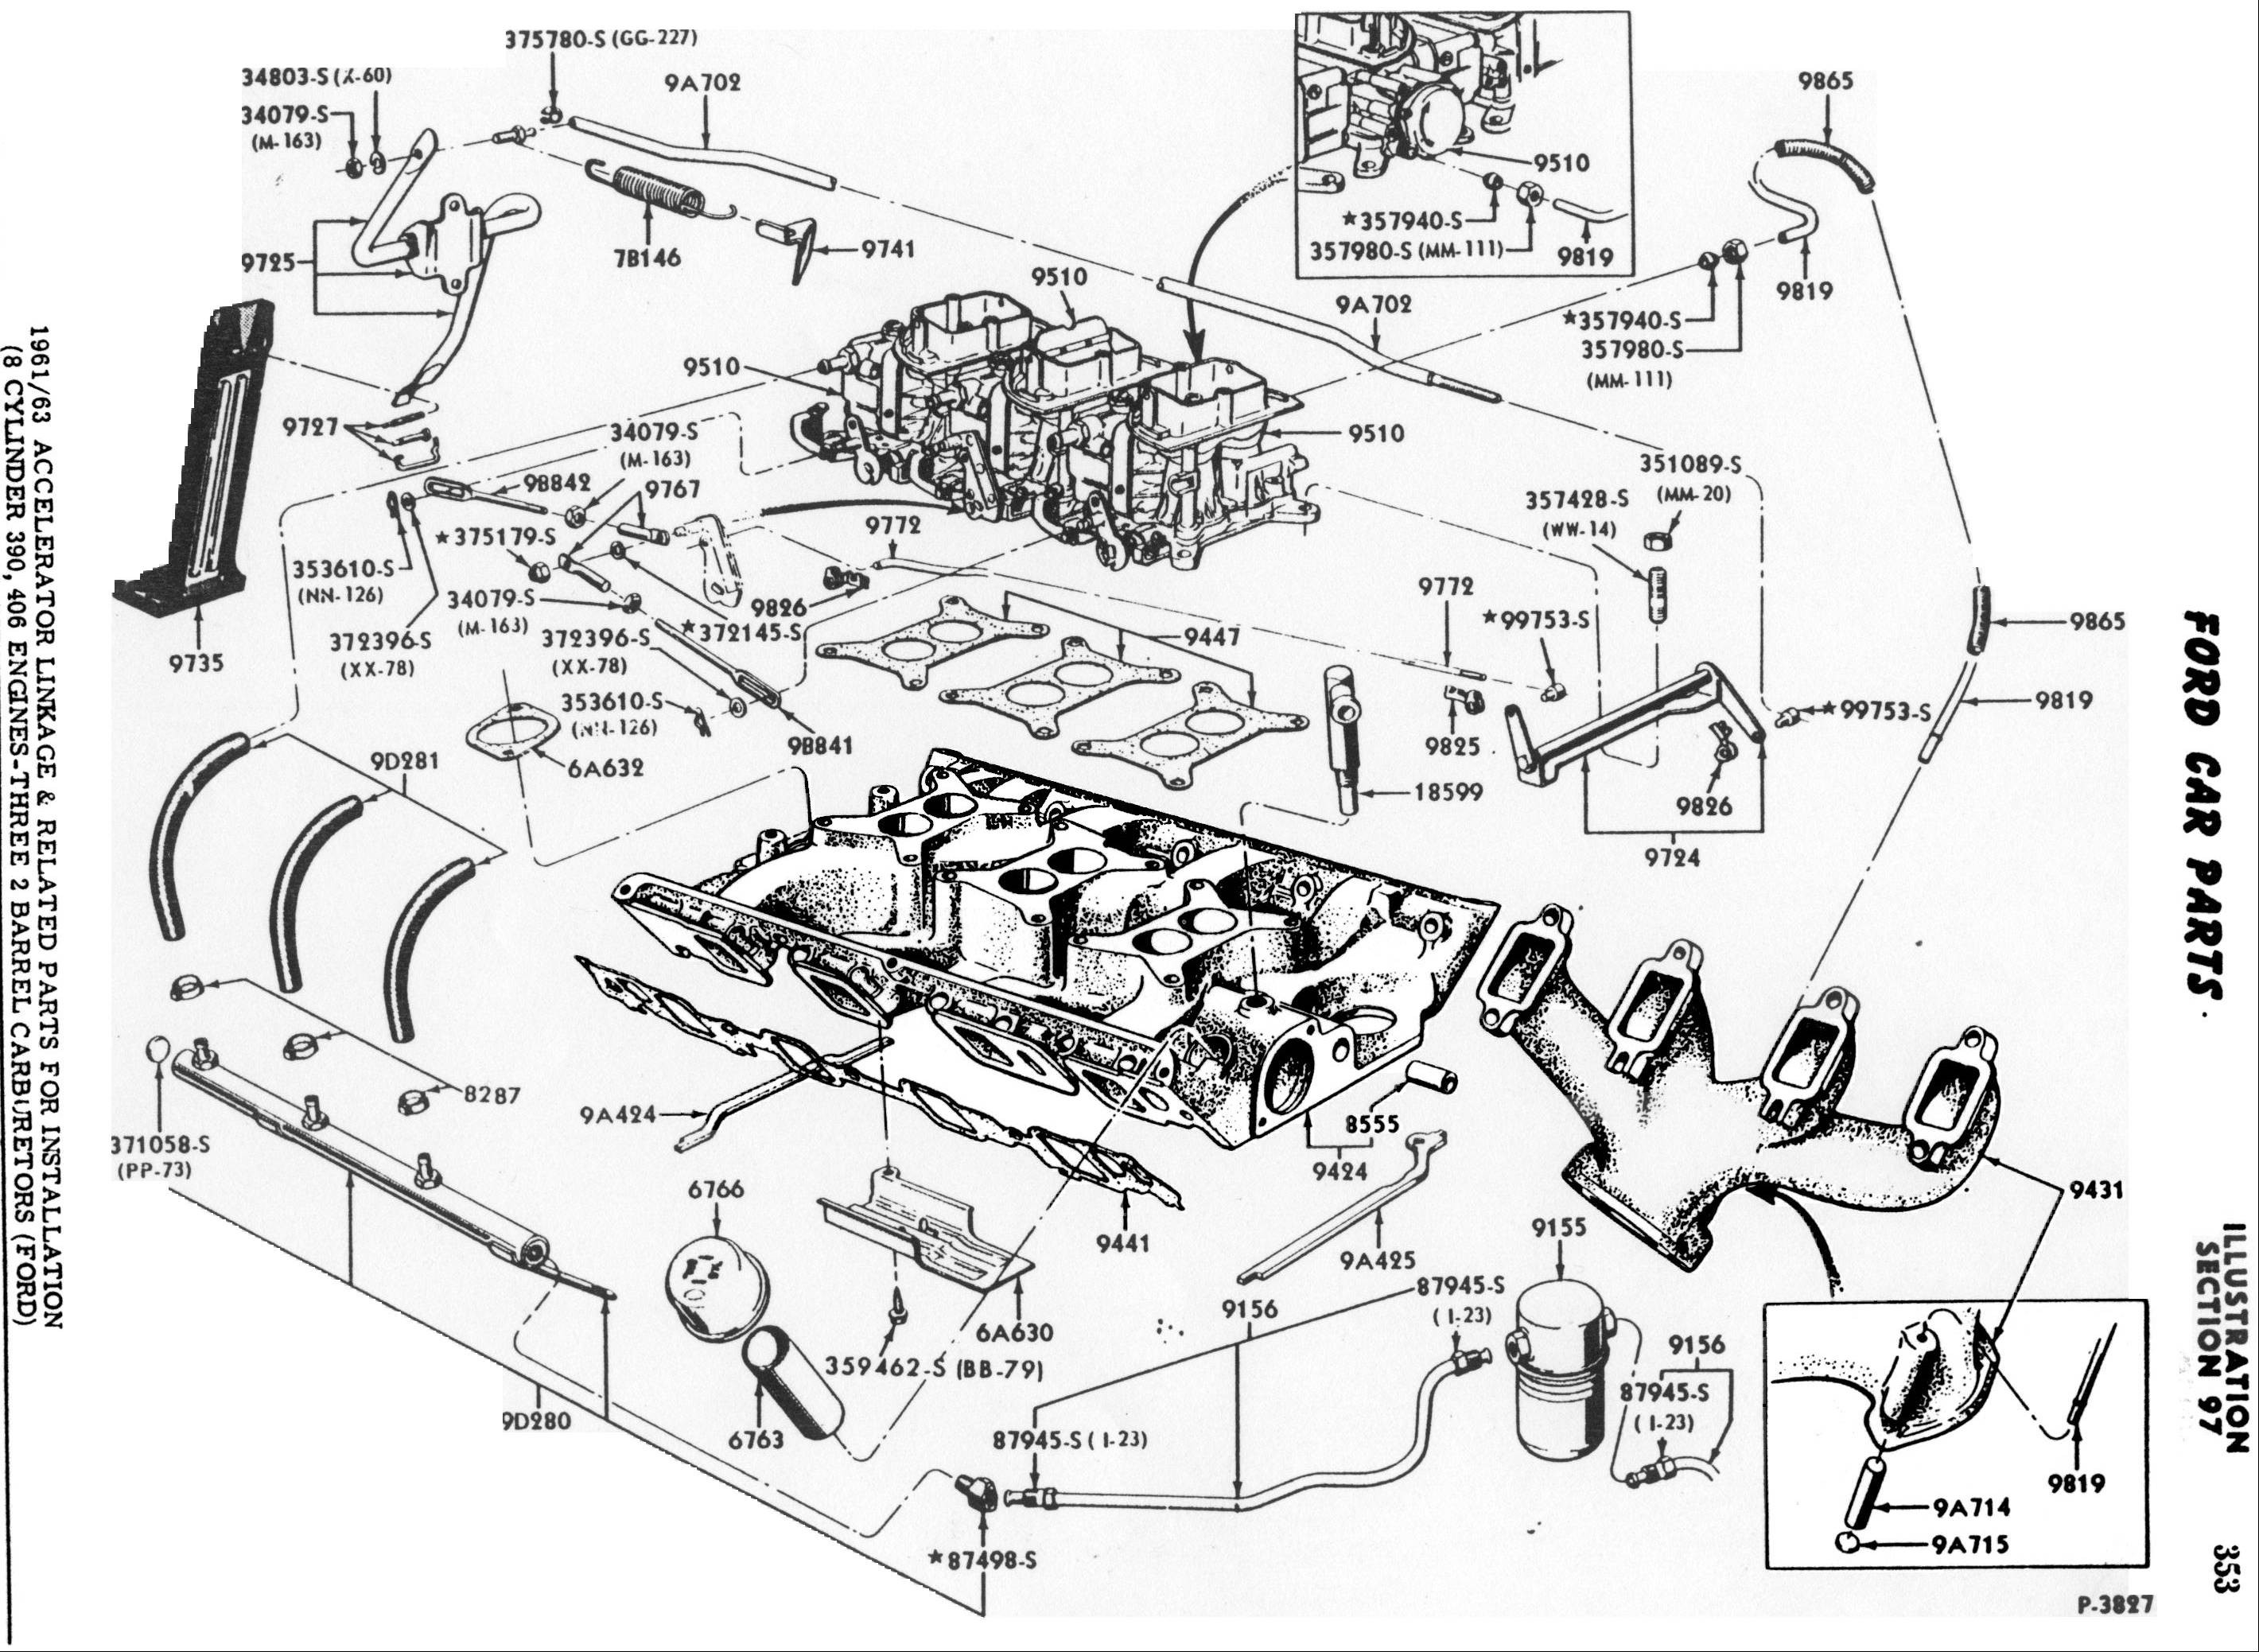 2006 Dodge Charger Engine Diagram 1934 Wiring Diagrams 460 Ford Info Of